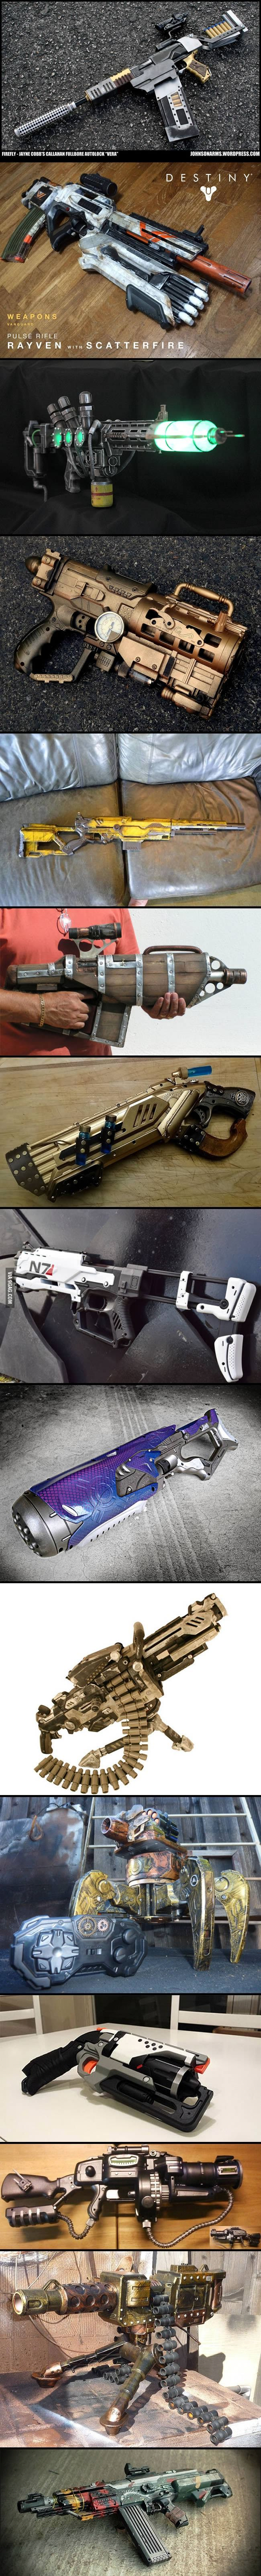 These Custom Nerf Guns Are Just Insane!